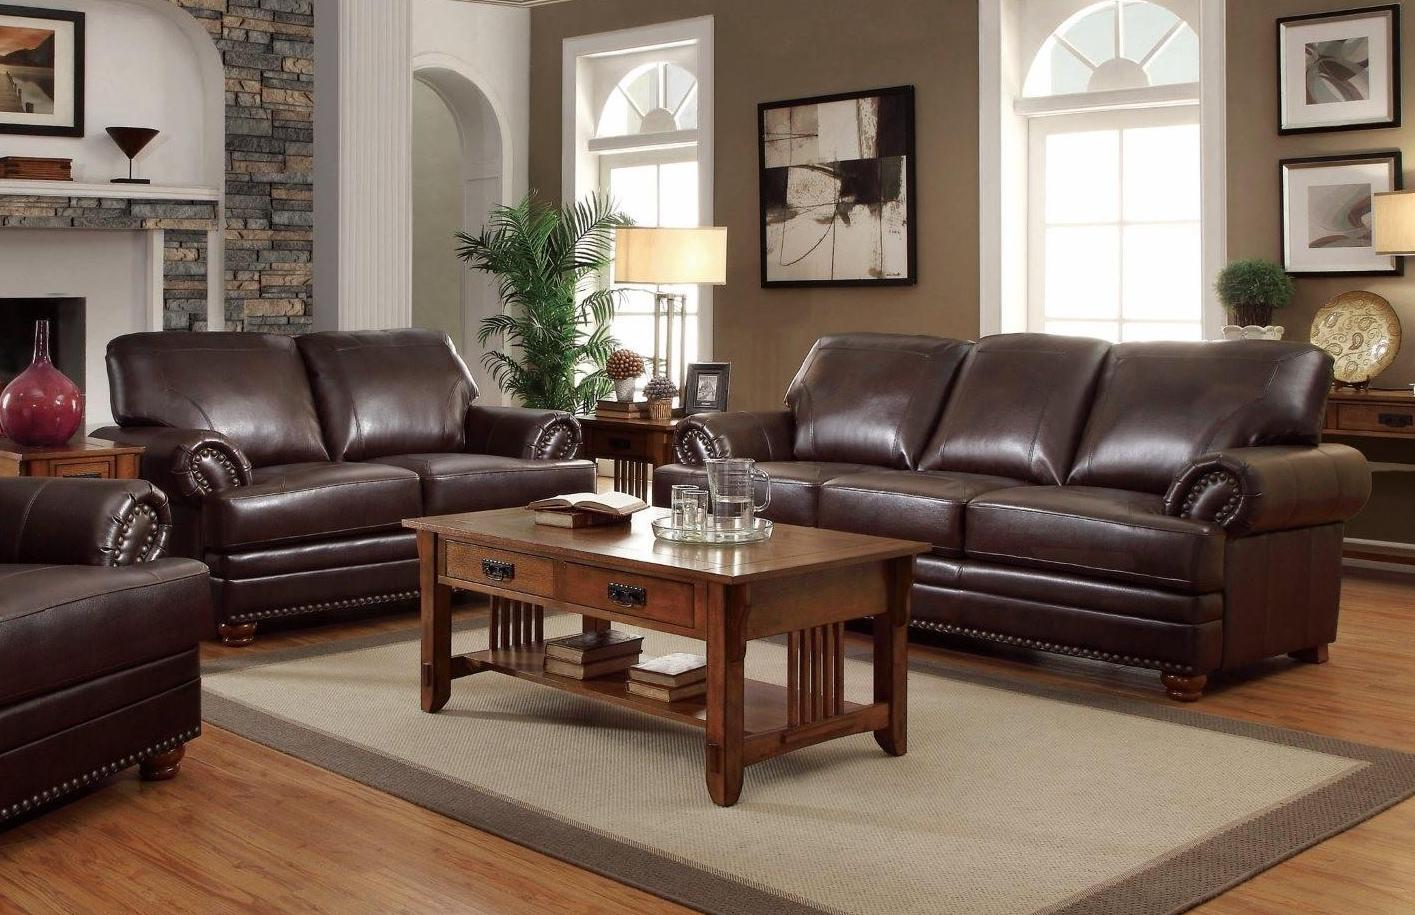 Coaster colton brown sofa loveseat set dallas tx Living room furniture dallas